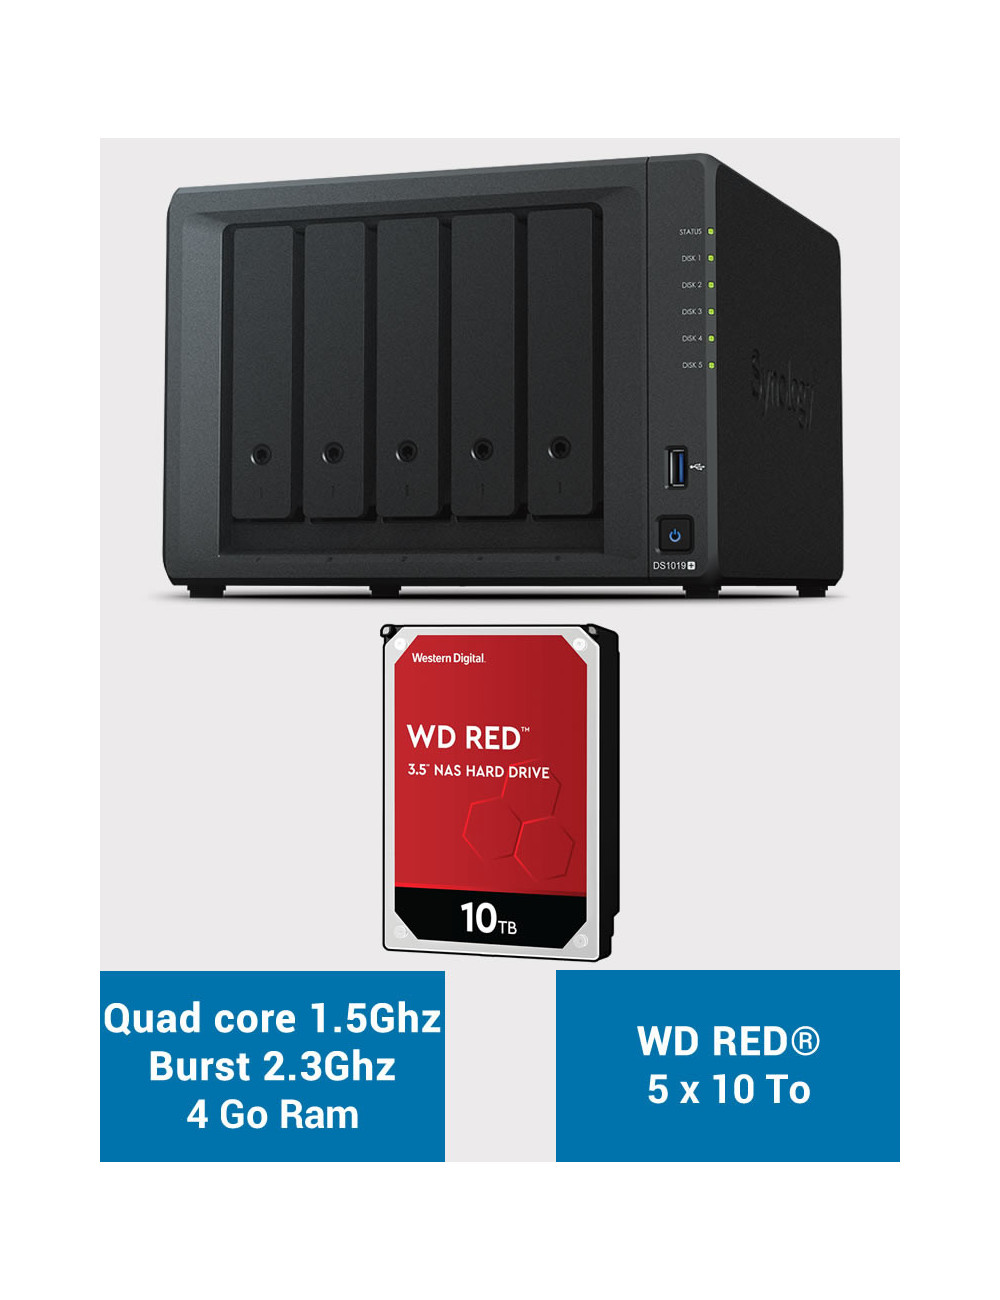 Synology DS1019+ NAS Server WD RED 50TB (5x10TB)